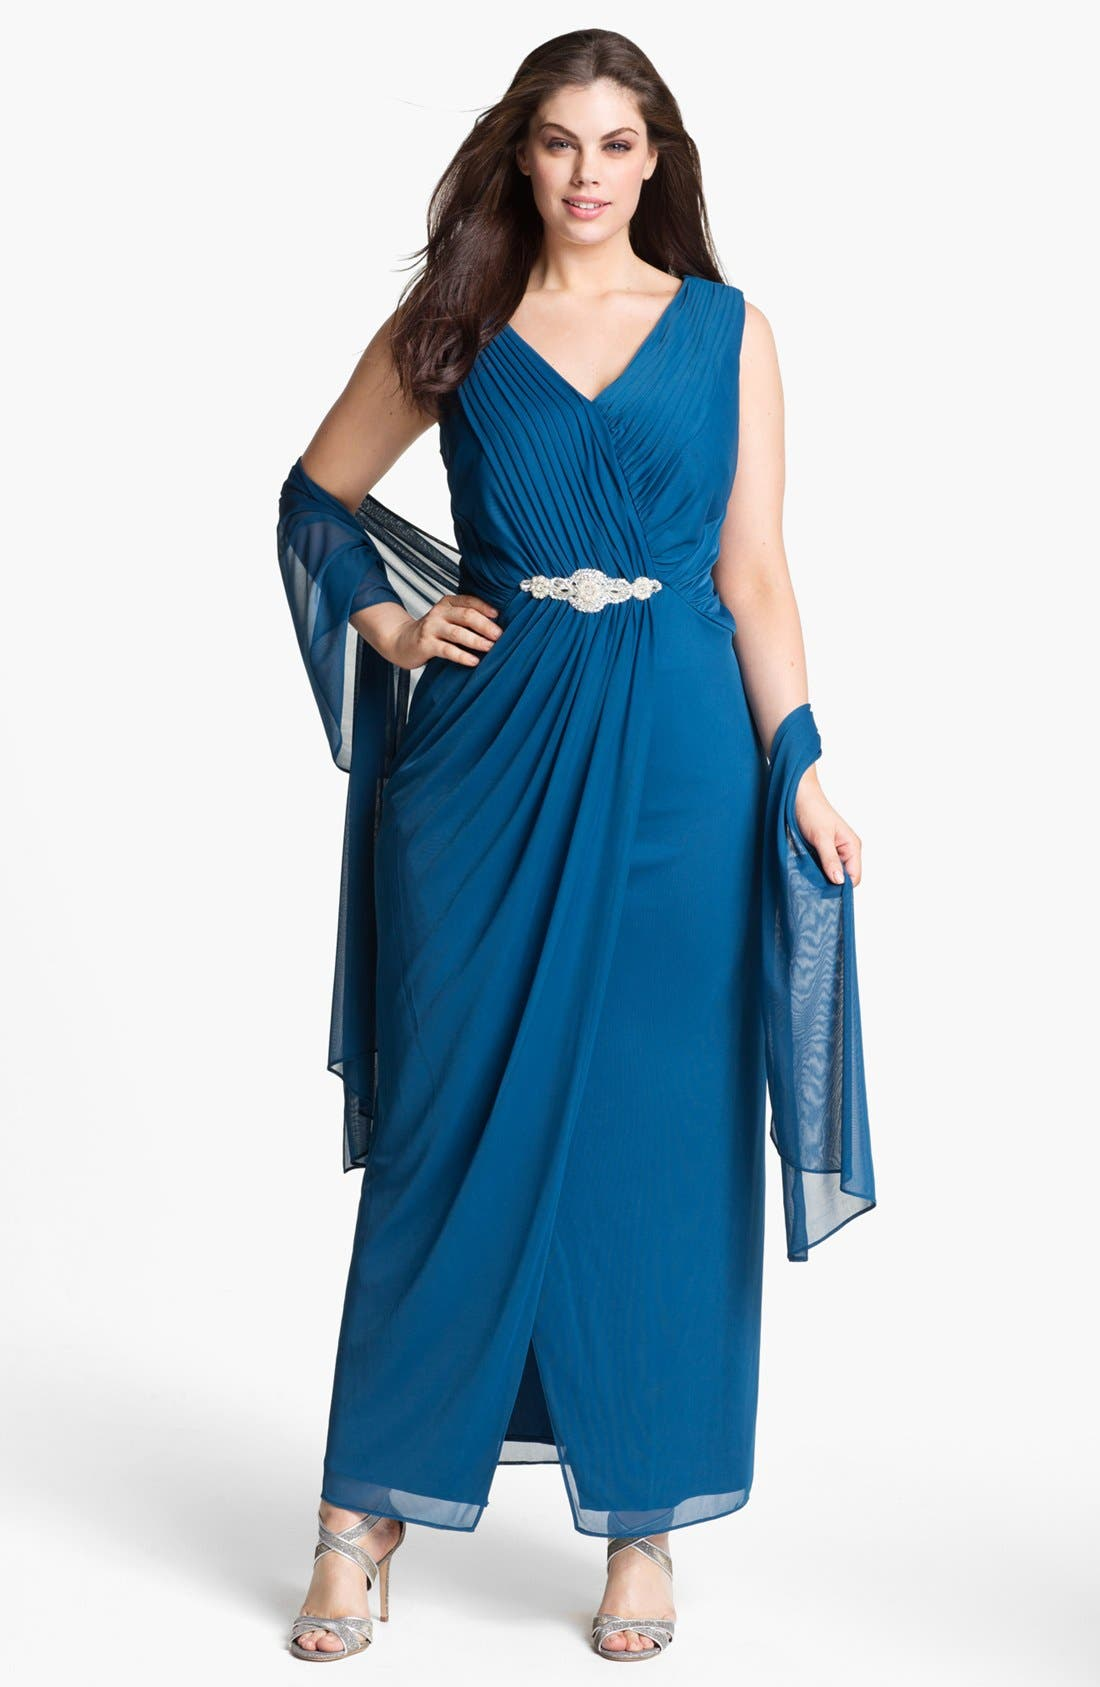 Alternate Image 1 Selected - Alex Evenings Embellished Mesh Gown & Shawl (Plus Size)